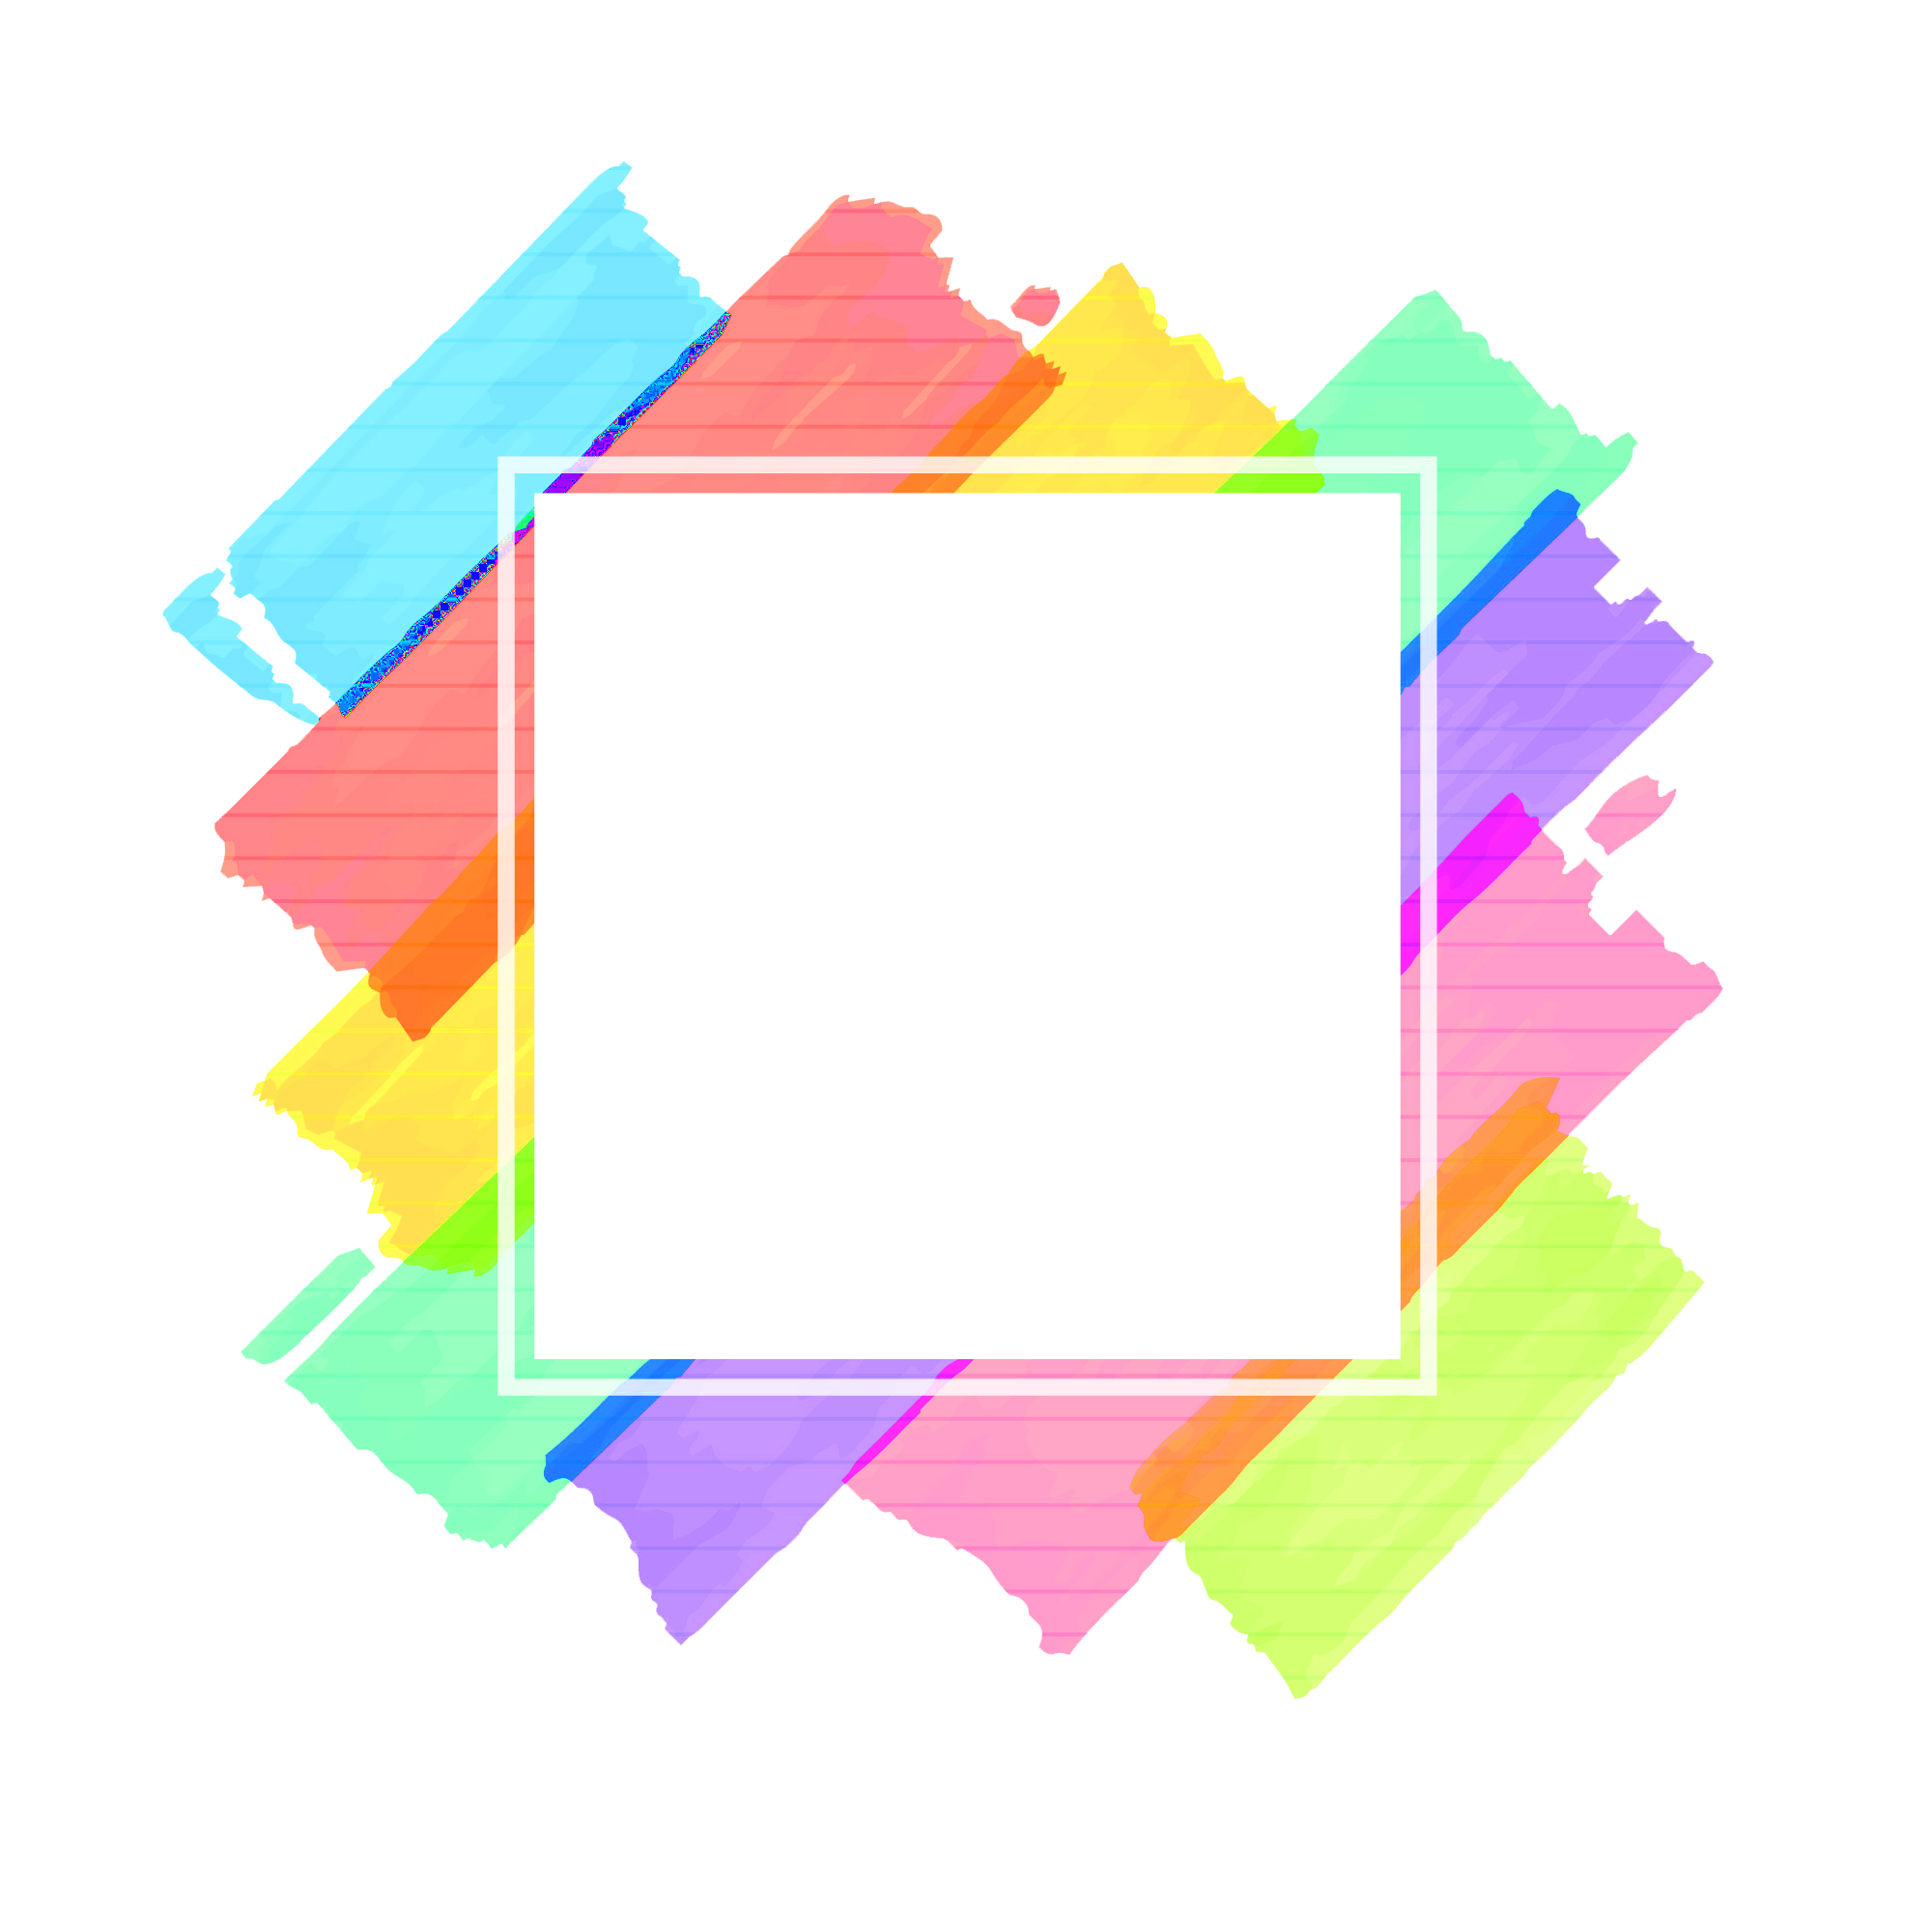 Abstract frames png. Colorful frame image peoplepng